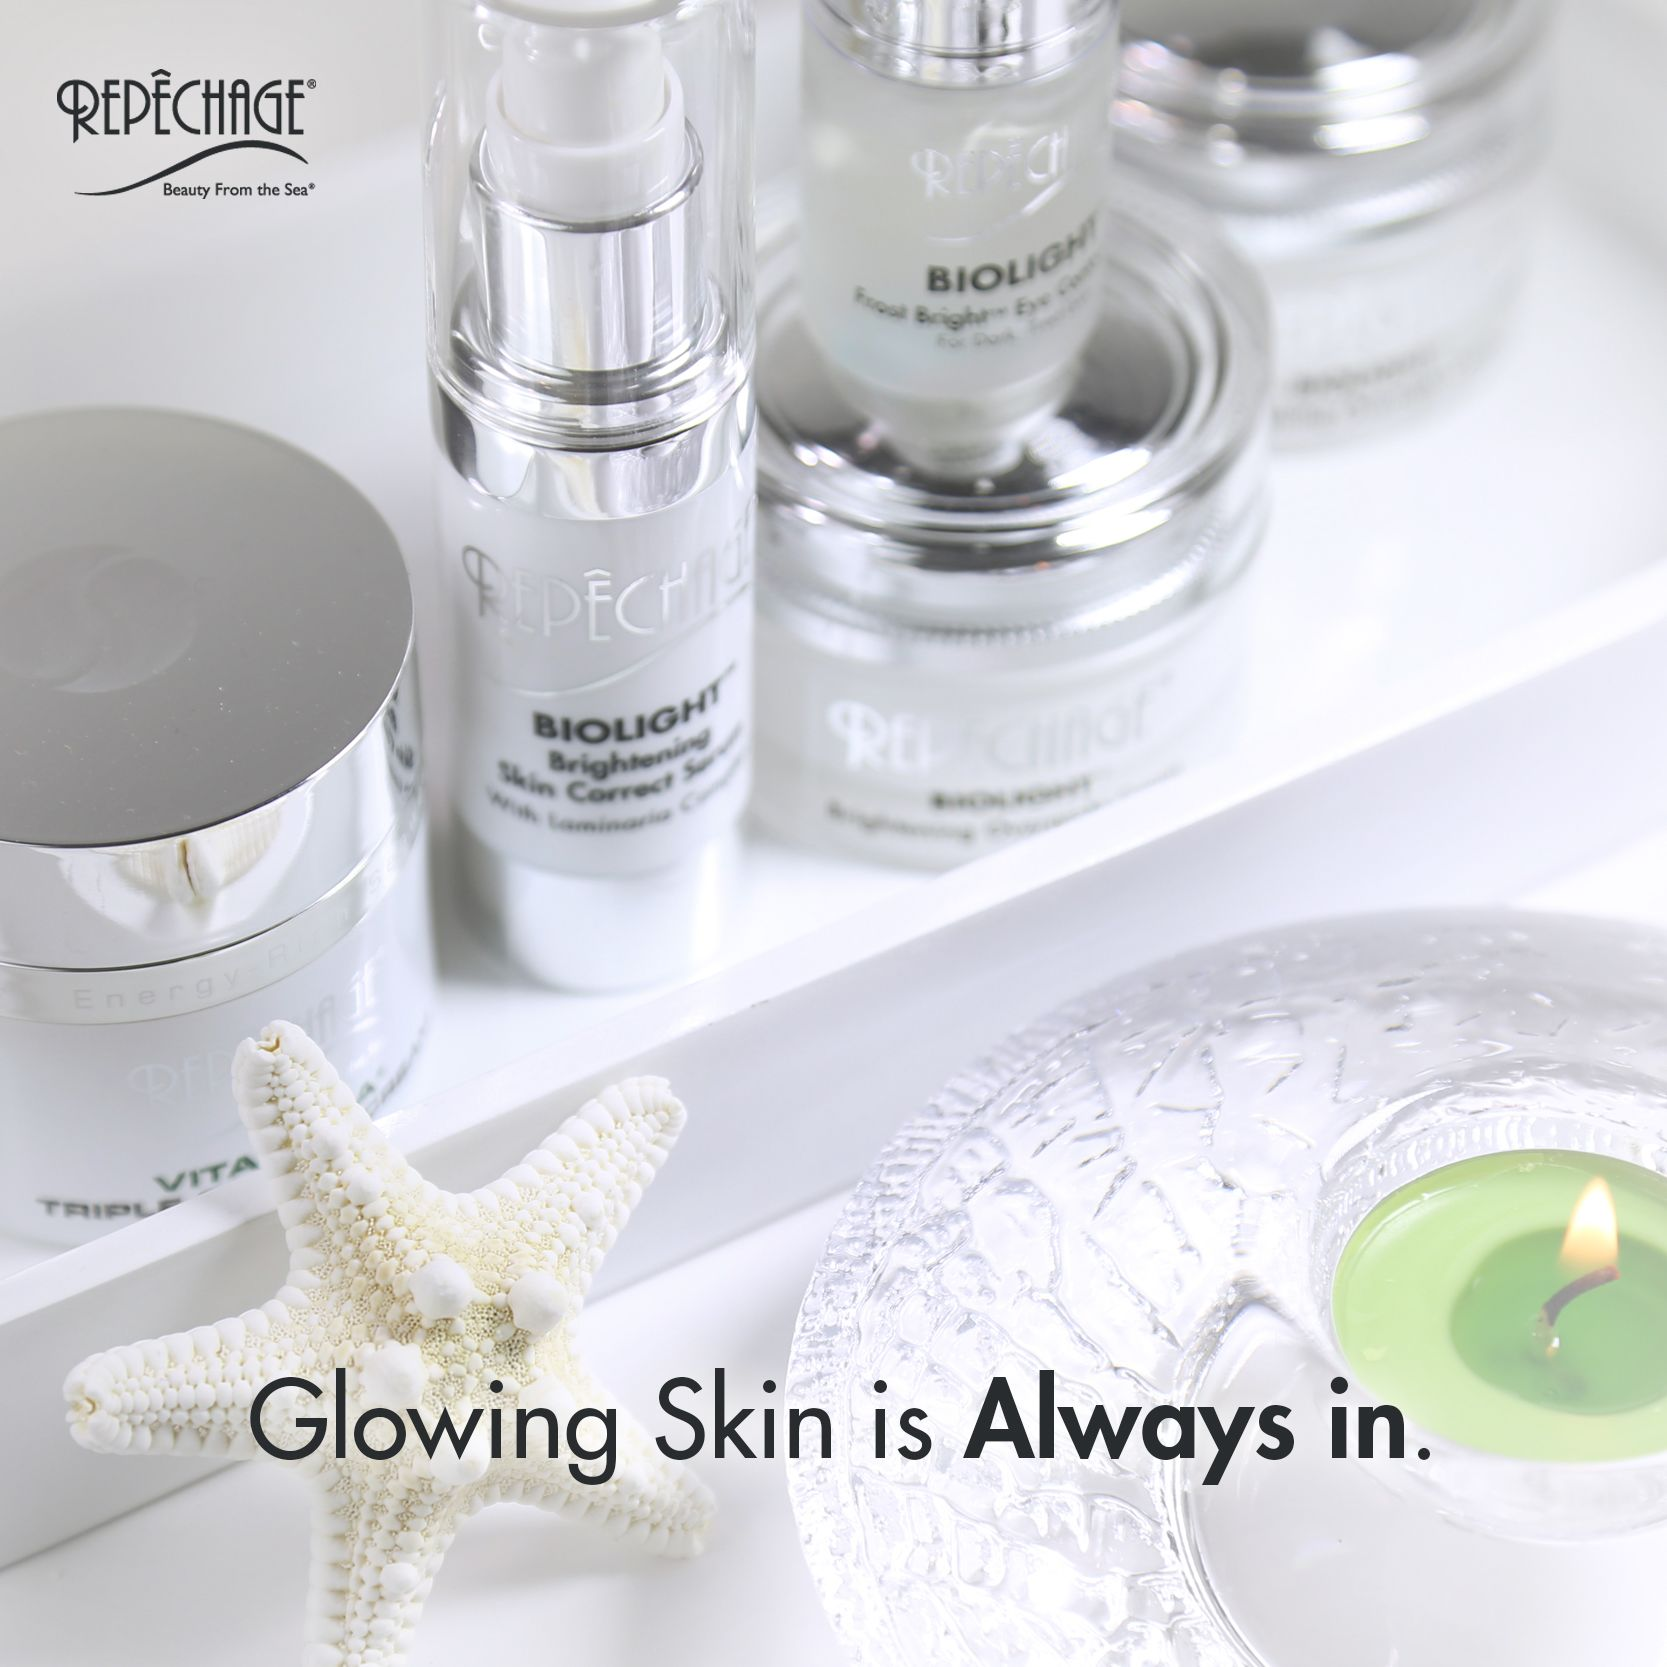 Glowing Skin Is Always In Skincare Facial Esthetician Repechage Professional Skin Care Products Uneven Skin Tone Esthetician Programs